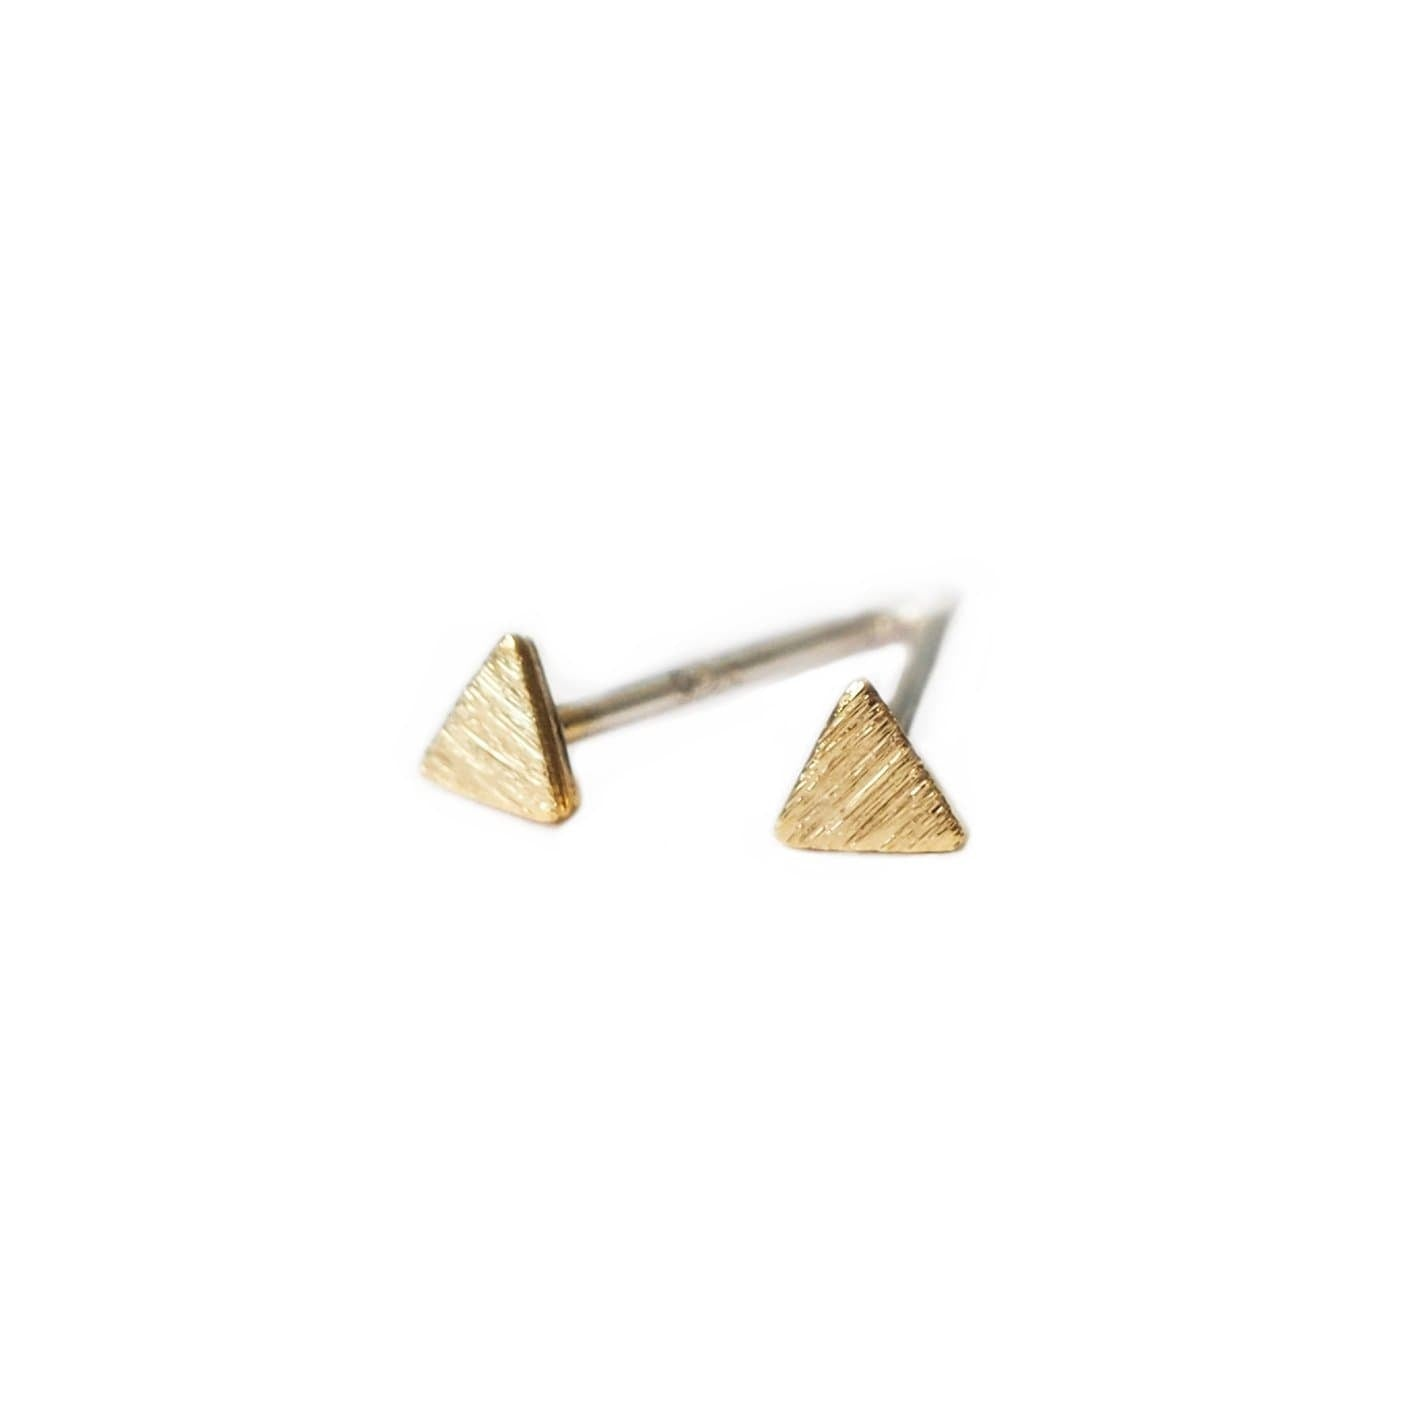 Triangle Stud Earrings, Earrings, adorn512, adorn512